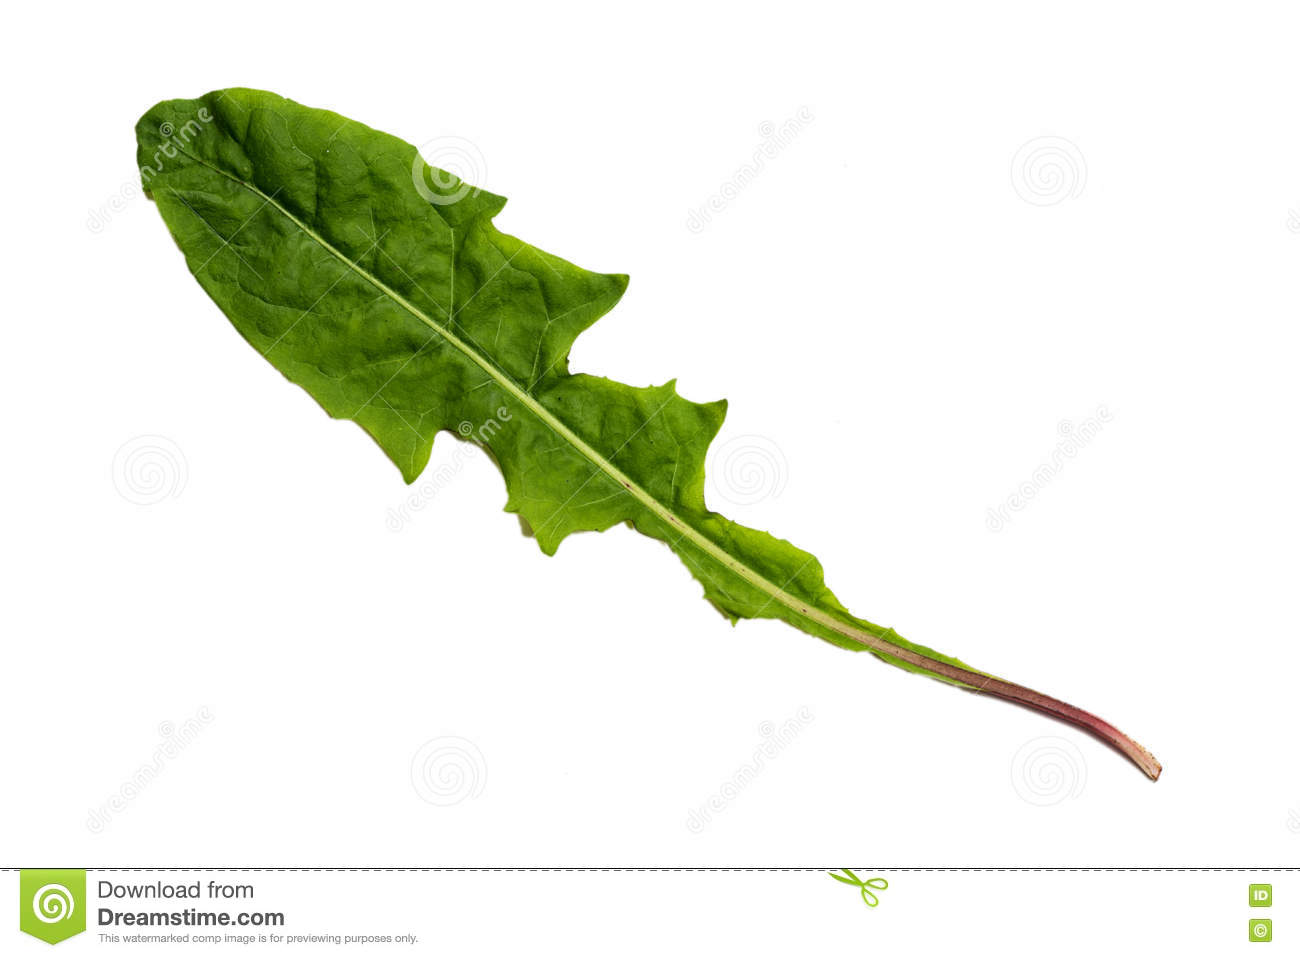 Green Dandelion Leaf with Texture isolated on White Background.